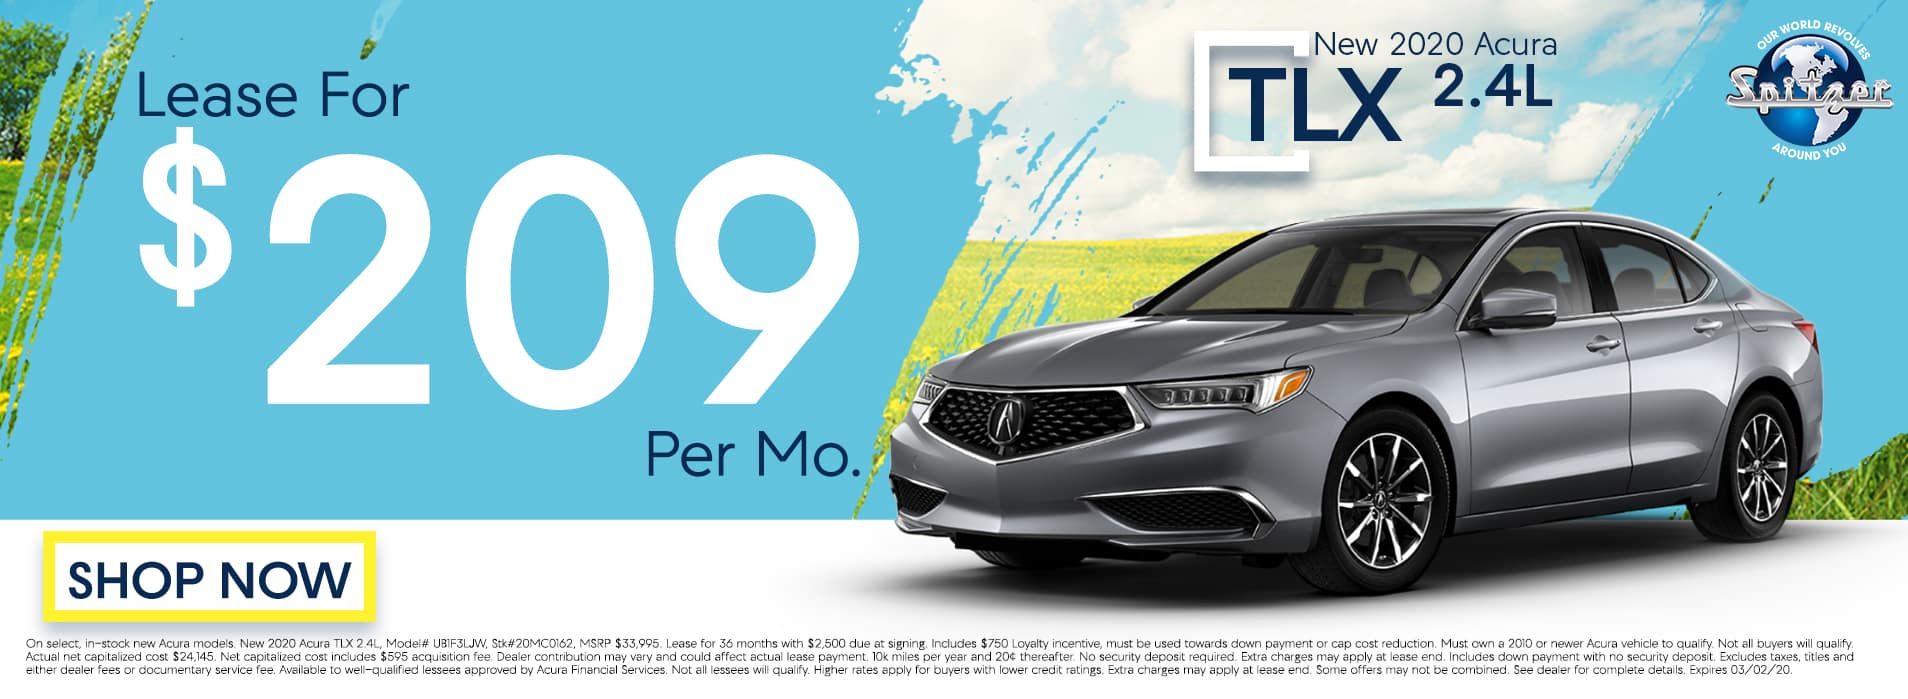 TLX : Lease for $209 per mo